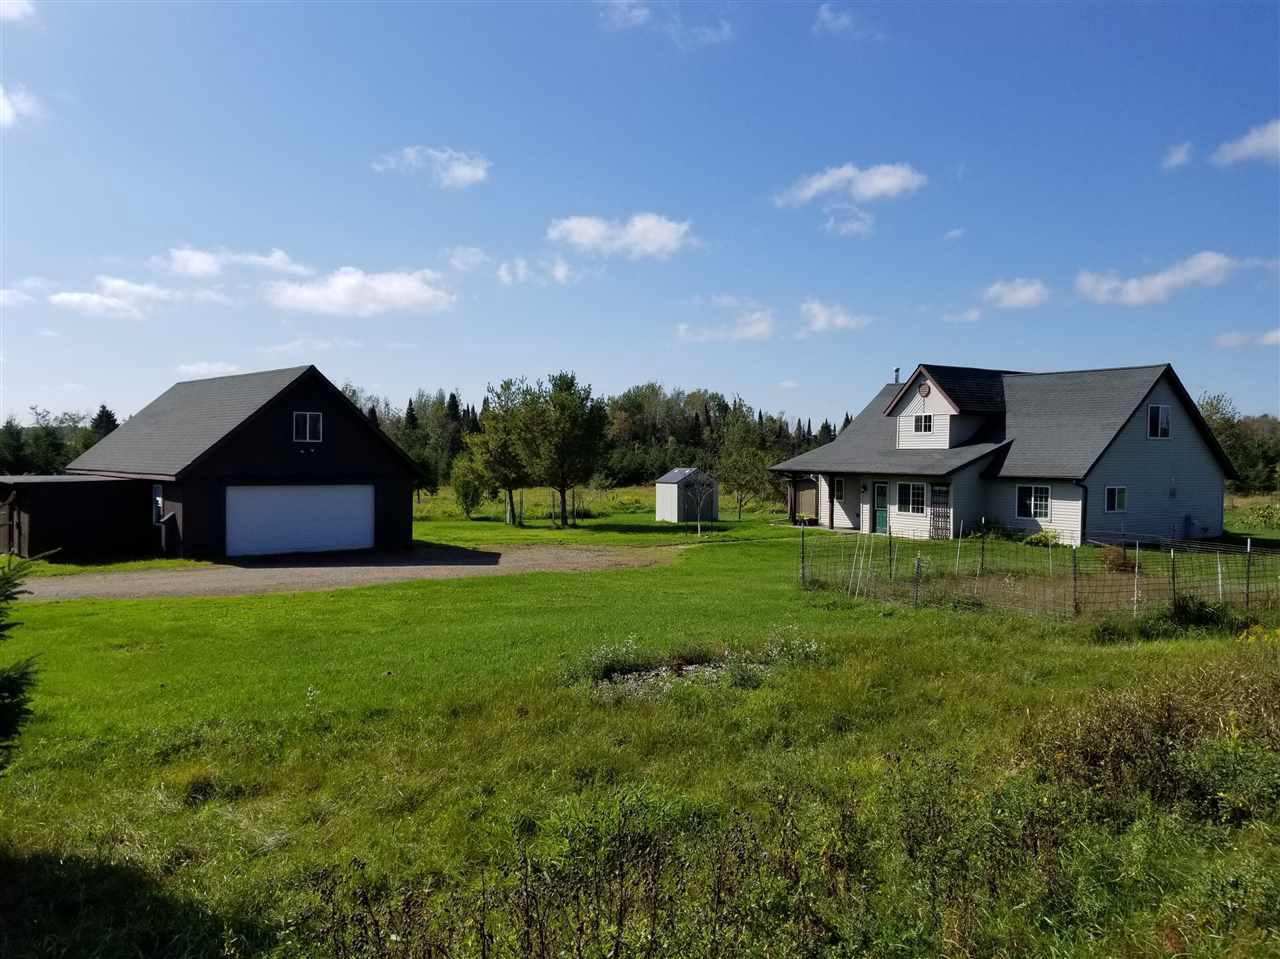 Looking for an affordable opportunity to Homestead on 36 of your very own?  Raise chickens and dogs, goats, horses or beef cattle?  This is definitely the opportunity you've been looking for that rarely comes available in the gorgeous Town of Pine River countryside.  Sellers have planted 20 fruit trees, including pear, plum & Cherry, oaks and maples and the chicken coop is included. This is an easily commutable location for those working in Merrill, Wausau or Antigo.  It's move-in ready, let's get you Home!,While the home does not have a basement, the 24x36 garage/workshop has a walk up area for storage, or could be finished off.  The whole house has radiant in-floor heat installed and former owner used an LP Boiler to heat the home.  Current sellers disconnected the boiler and use a pellet stove instead, averaging $1000/year in heating costs.  The 320 gallon LP near the garage is also currently disconnected, but is owned and will stay with the home.  The gun safe in the Master Bedroom is also staying.  Jetted tub is currently not hooked up, but would just need to be re-connected.  Seller's worked from home in the web development industry and use fixed wireless high speed internet through Airnet.